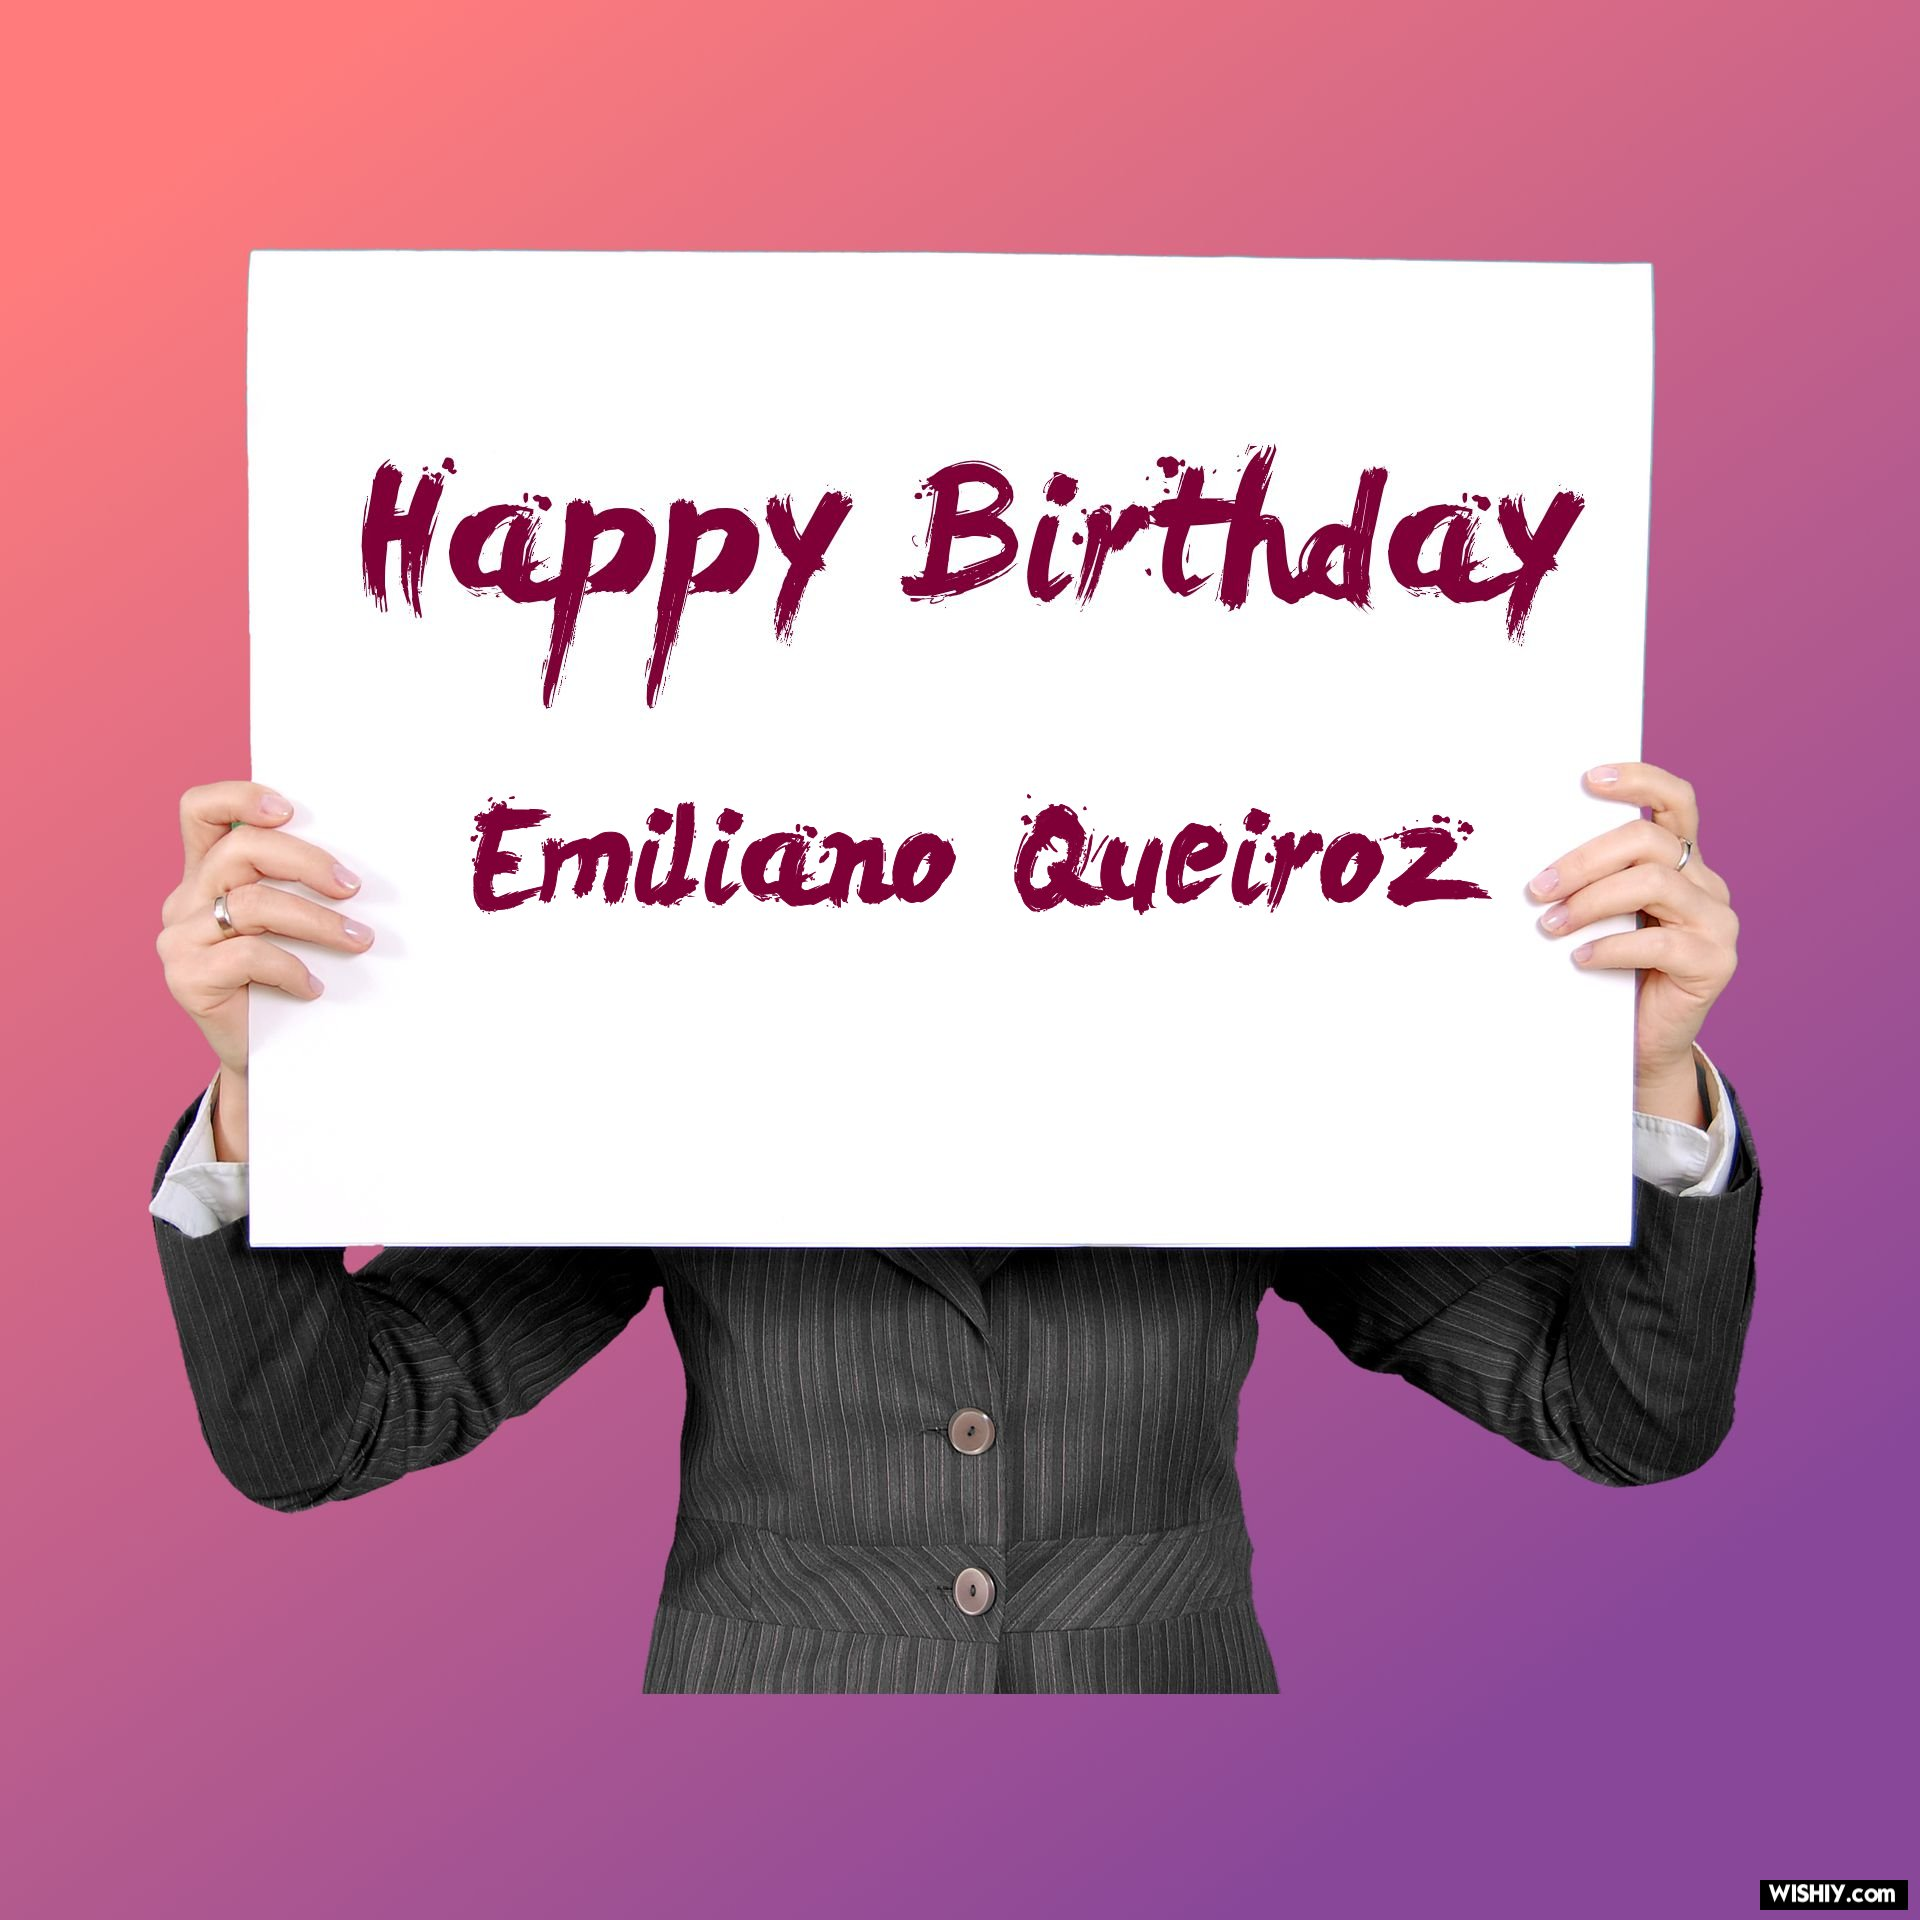 Birthday Images For Emiliano Queiroz Generator 2020